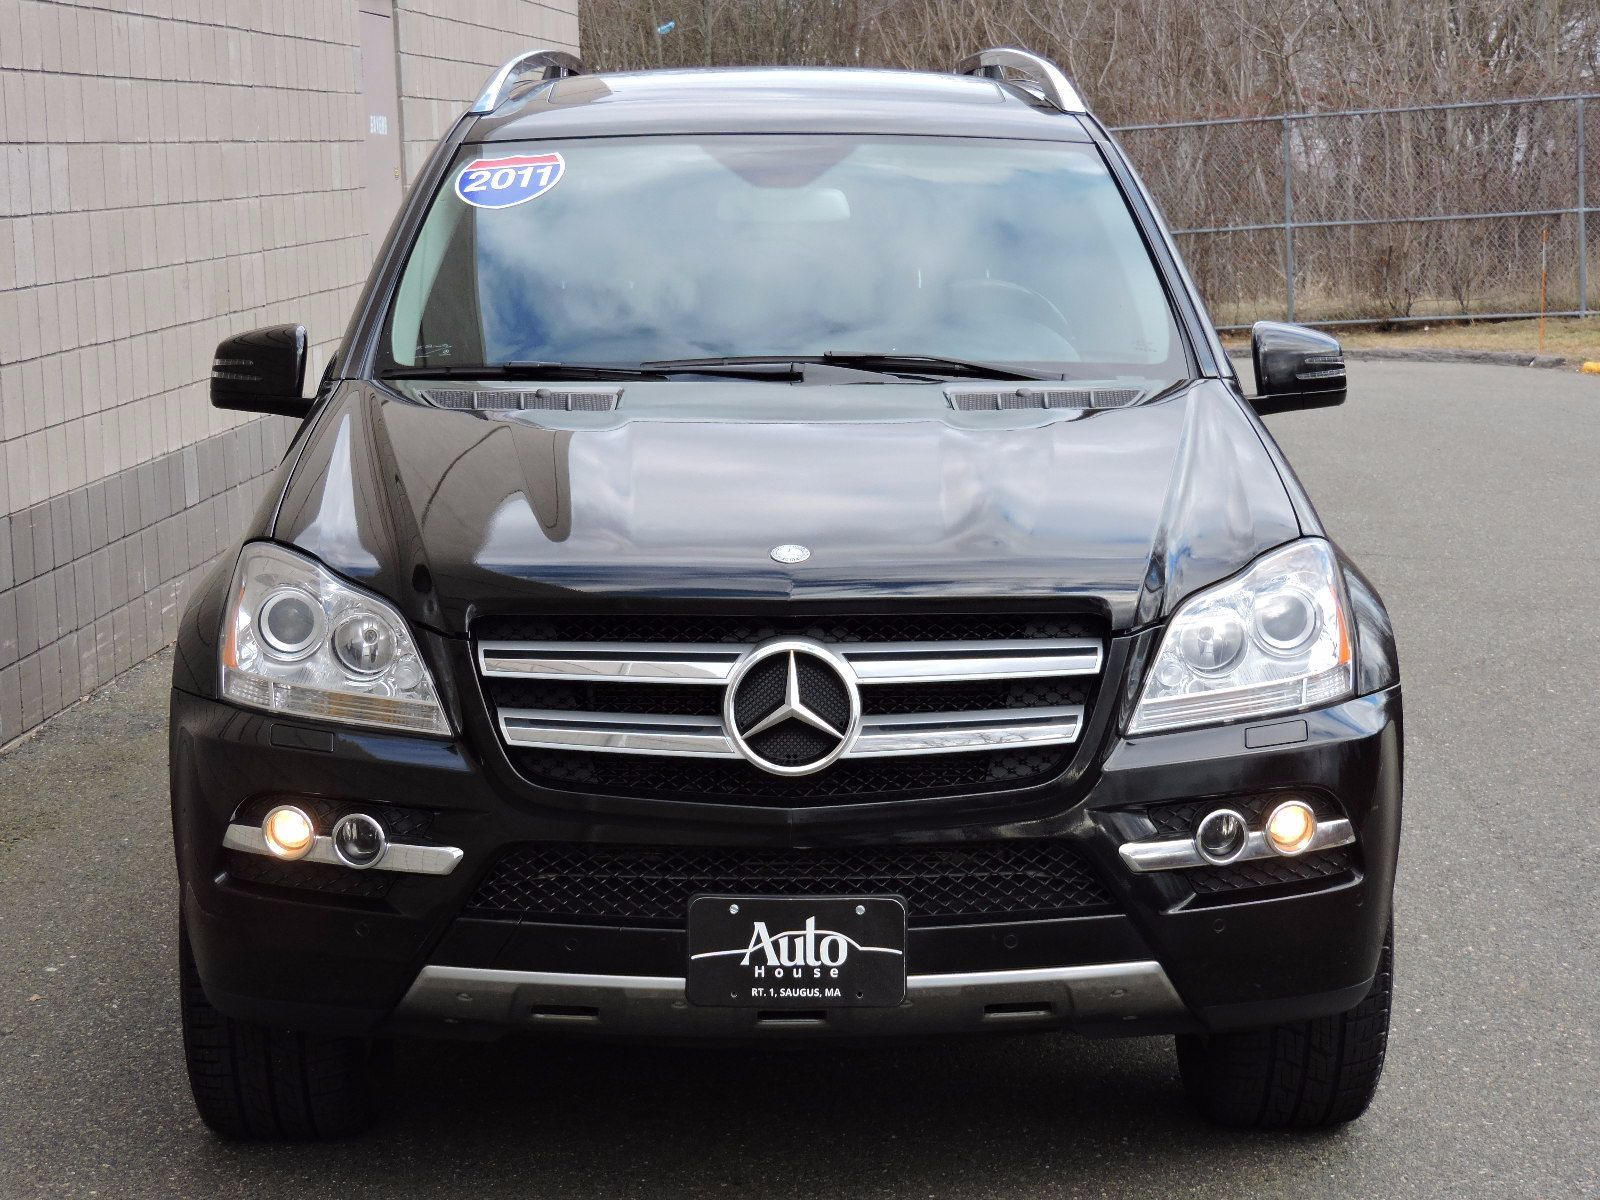 Used 2011 mercedes benz gl450 at auto house usa saugus for Used mercedes benz gl450